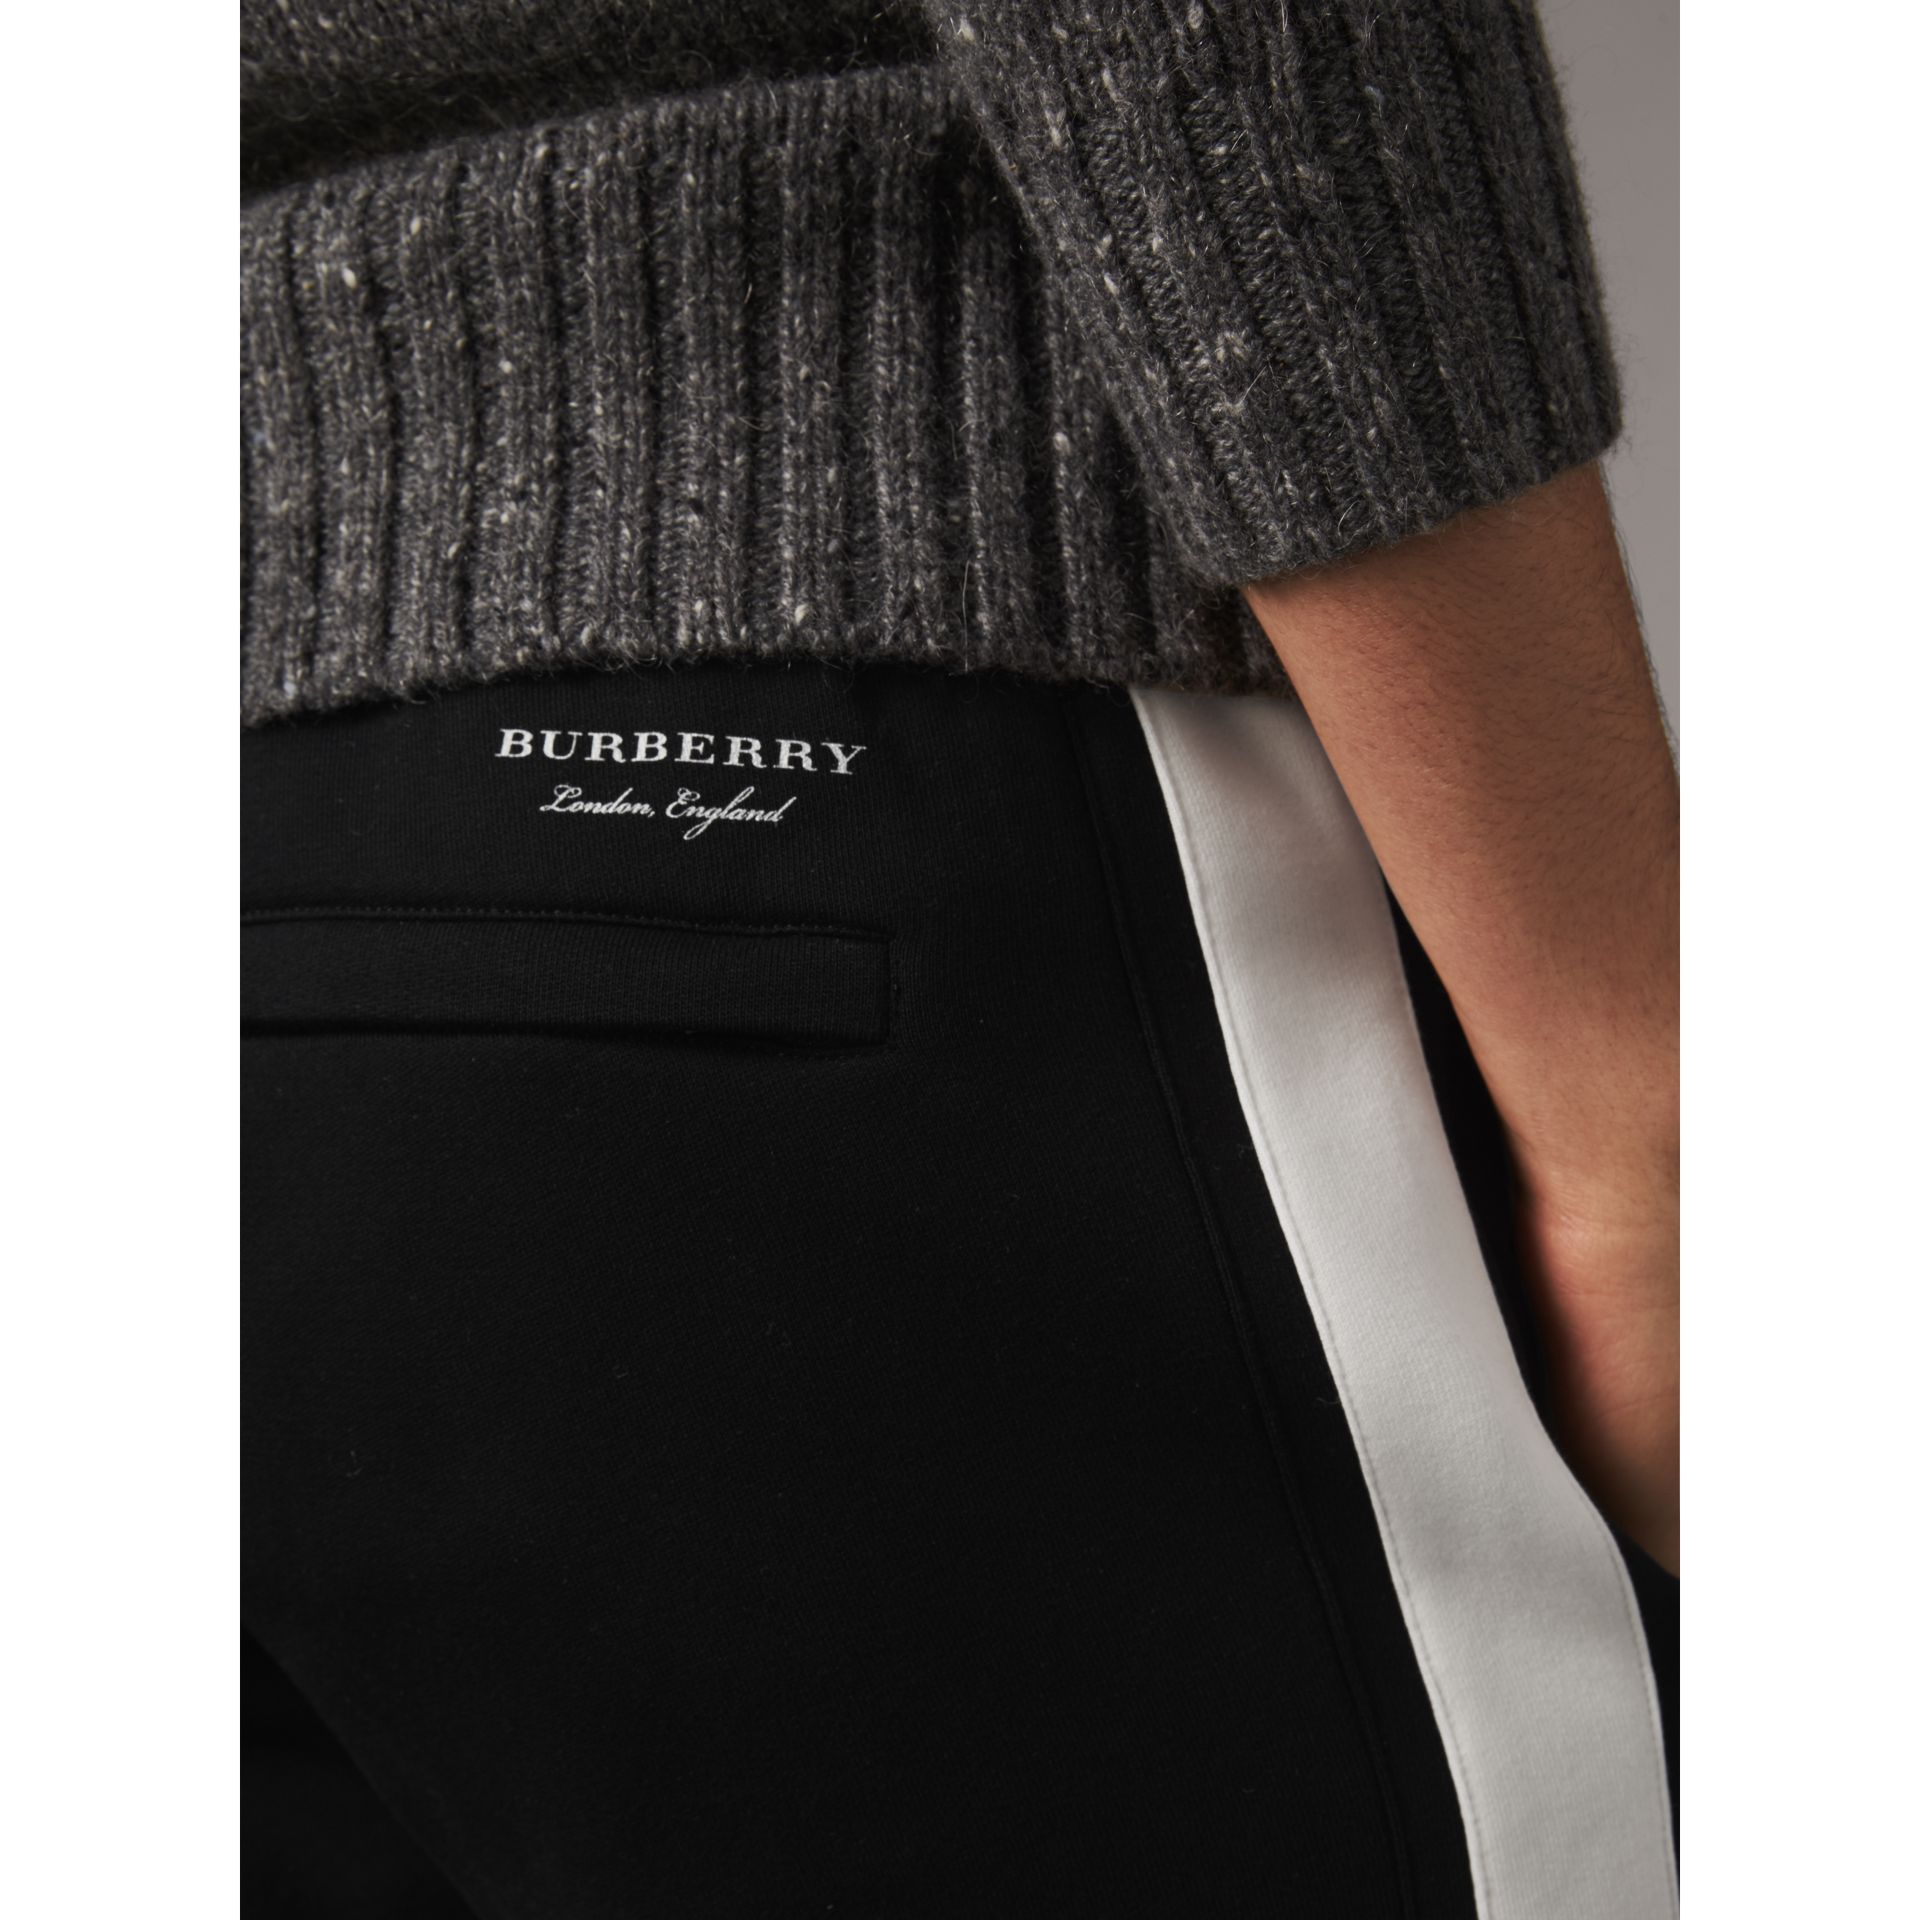 Bold Stripe Detail Cotton Blend Sweatpants in Black - Men | Burberry Hong Kong - gallery image 2